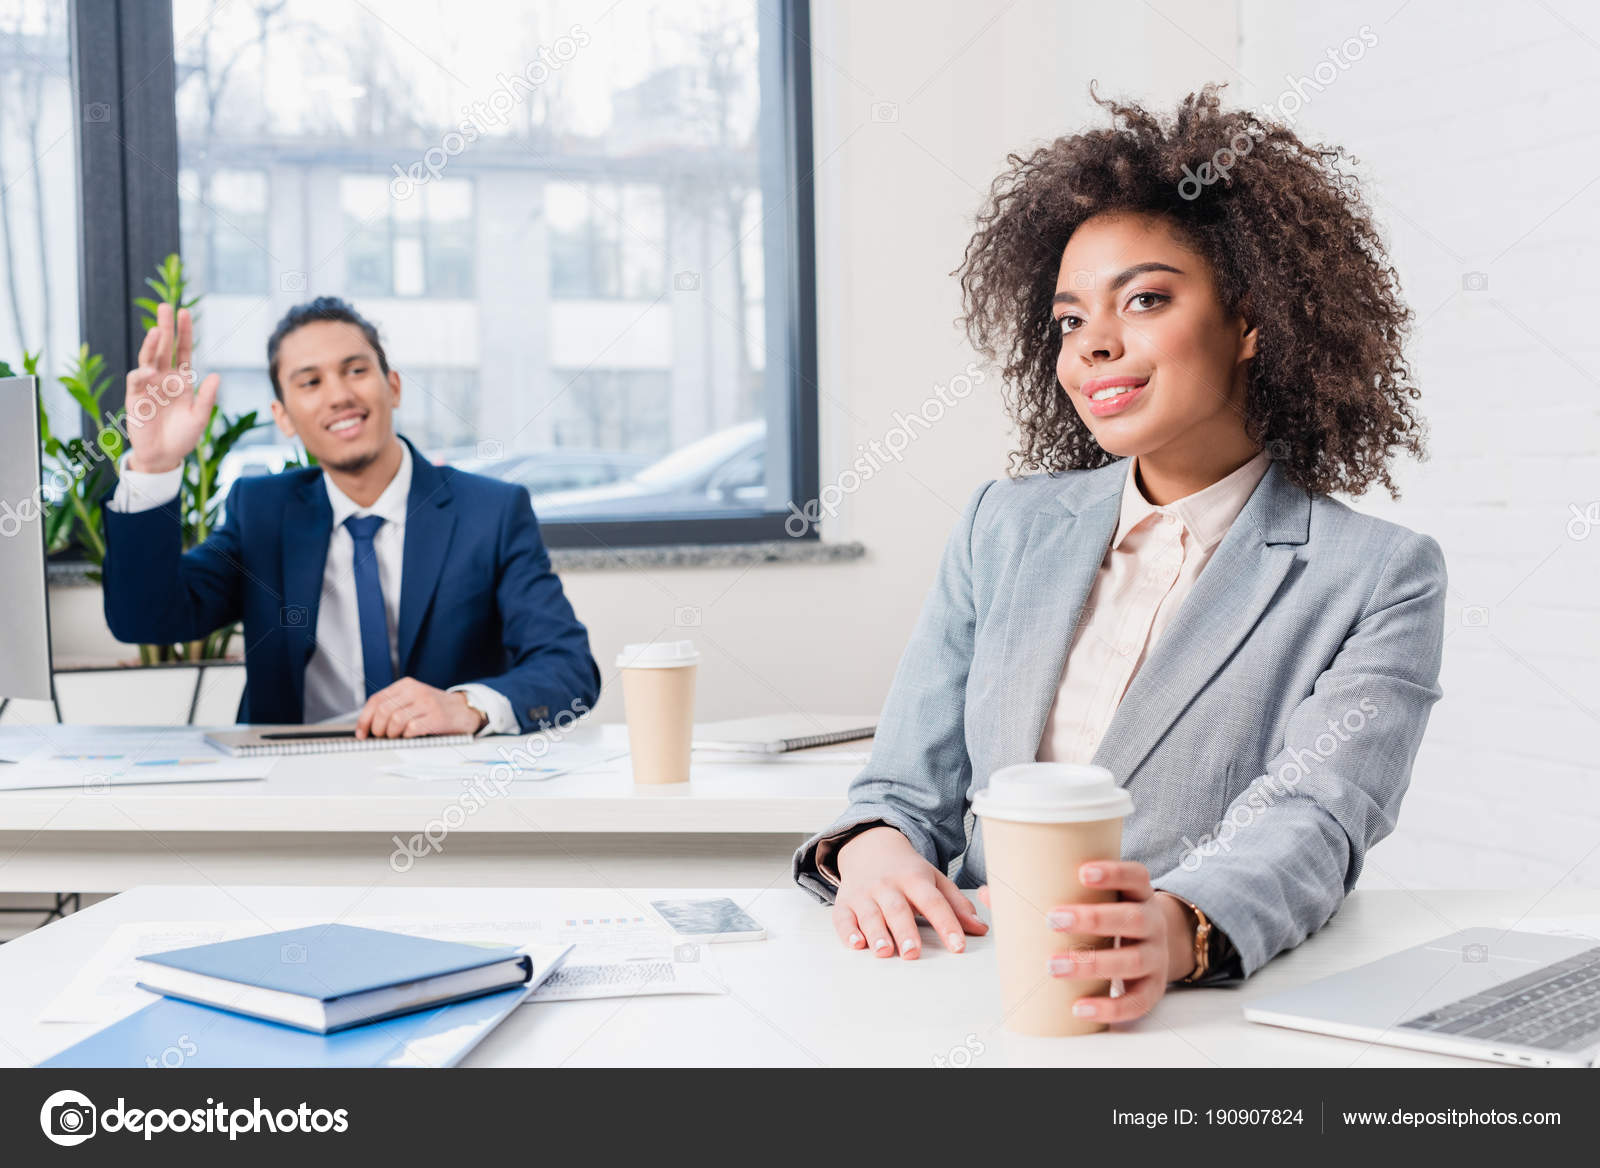 Businessman greeting someone businesswoman holding coffee cup office businessman greeting someone businesswoman holding coffee cup office stock photo m4hsunfo